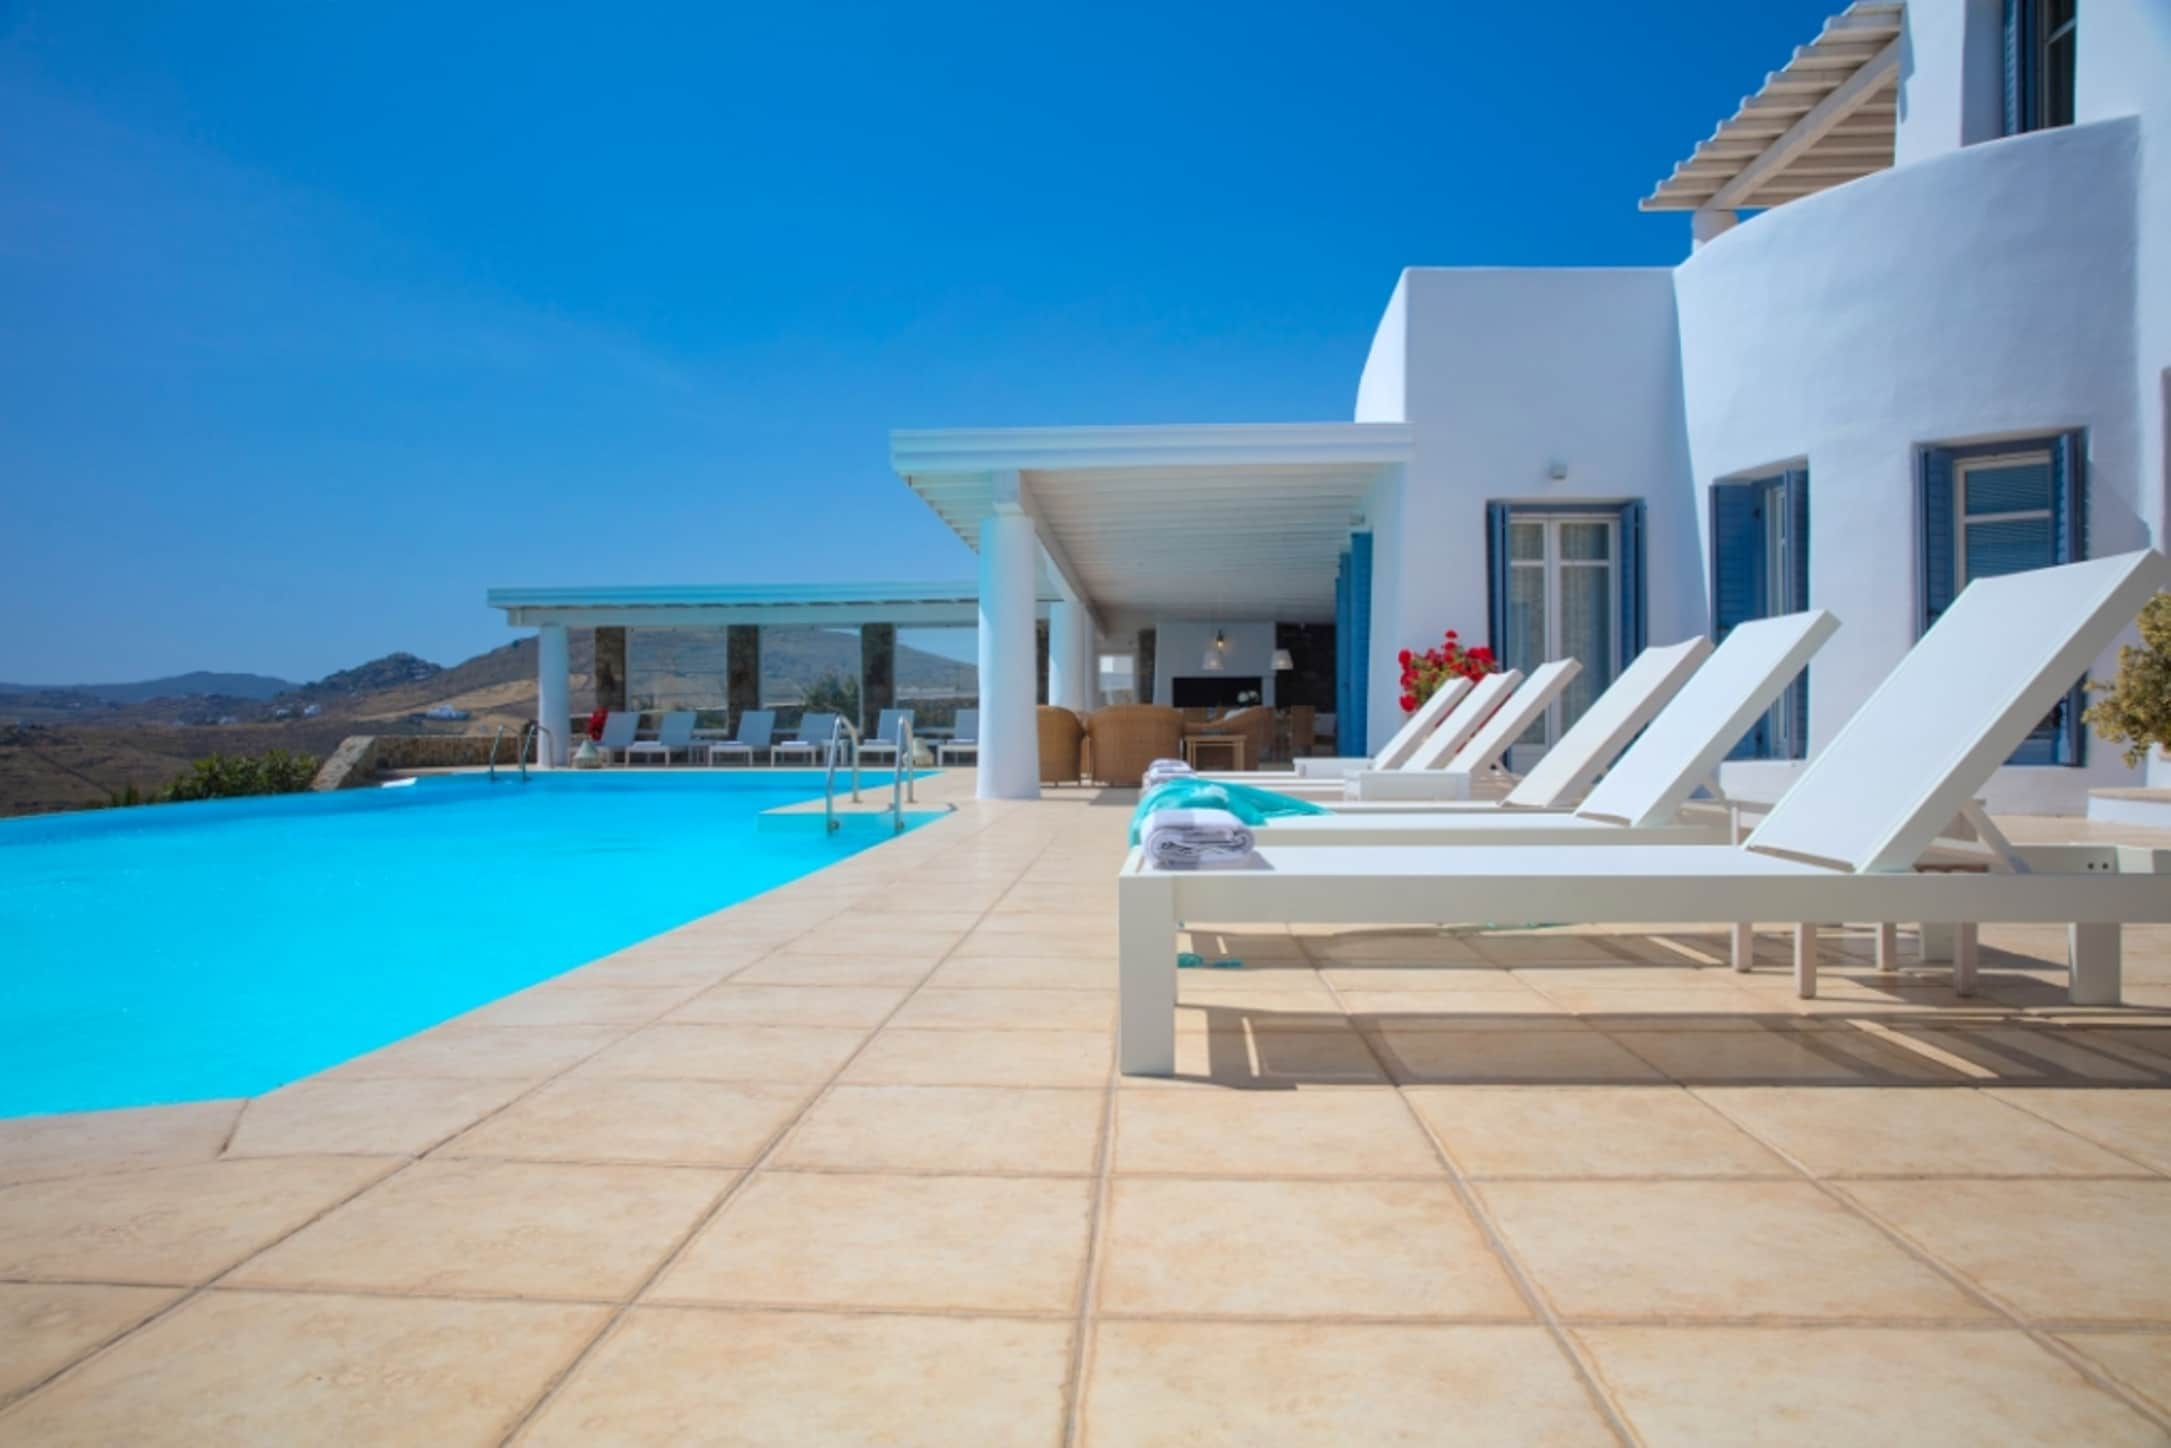 Property Image 1 - Stunning Villa with Infinity Pool, Jacuzzi and Private Gym